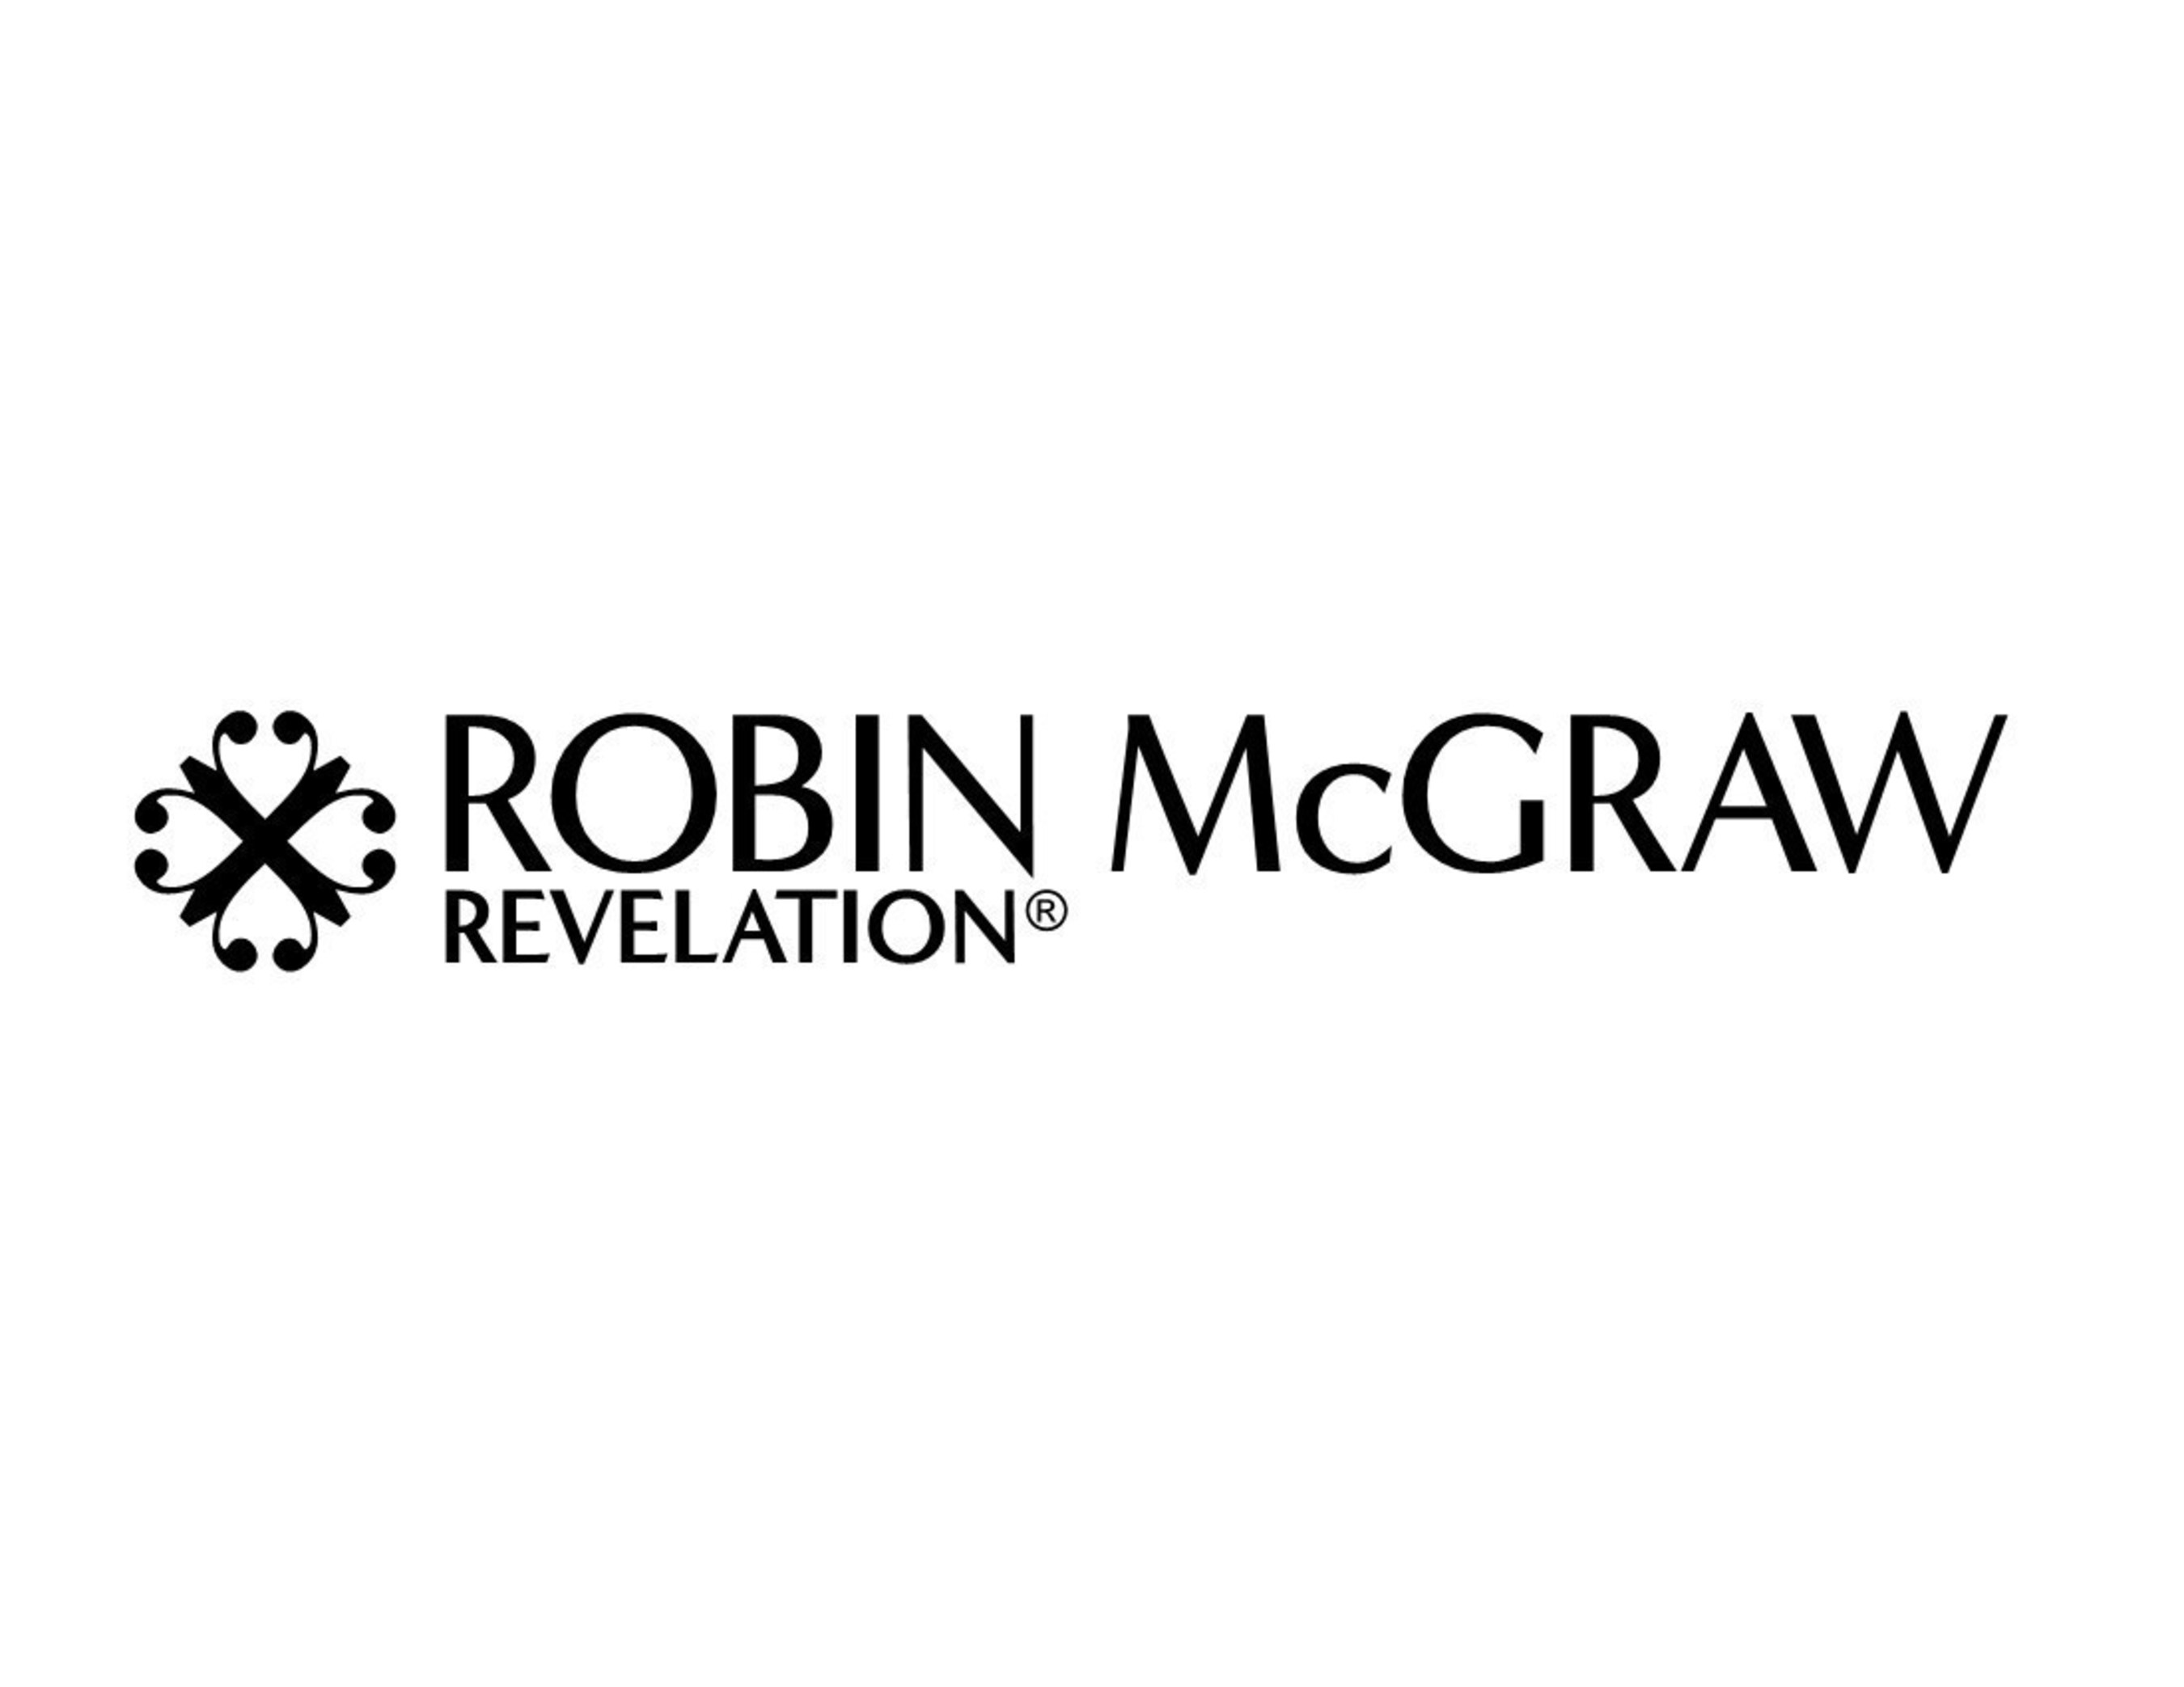 Robin McGraw Revelation